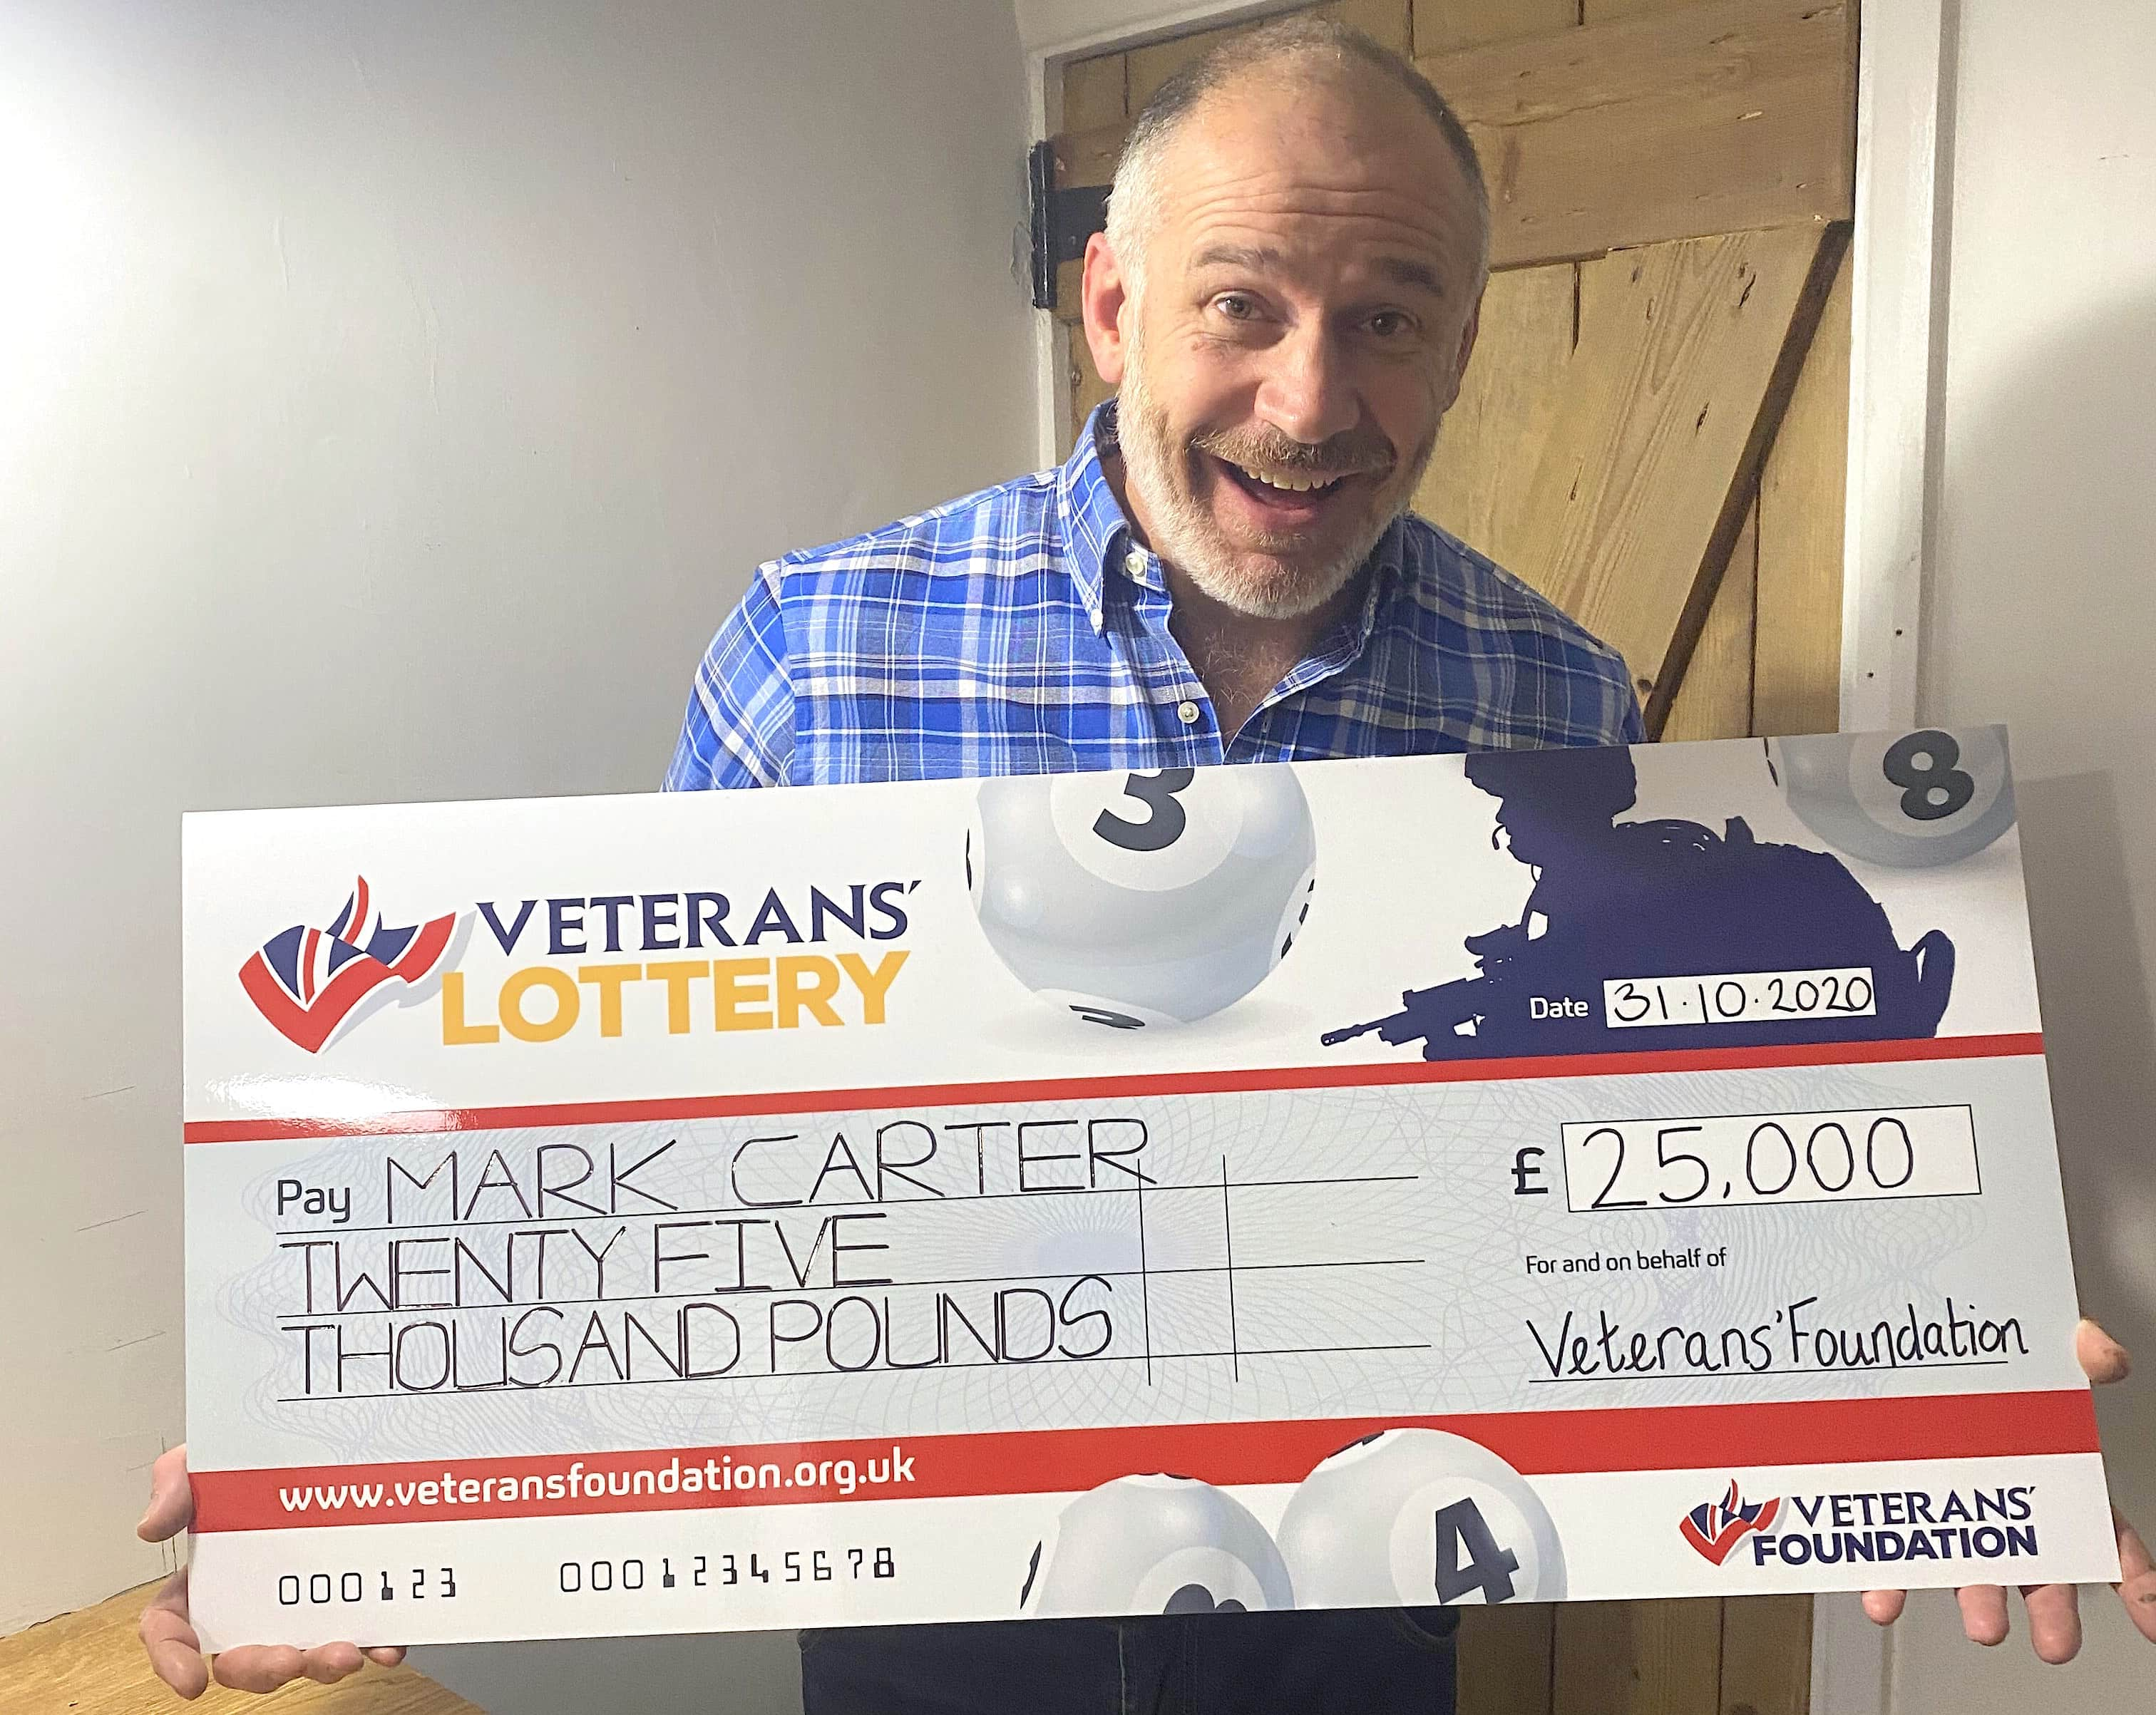 man holding cheque for £25,000